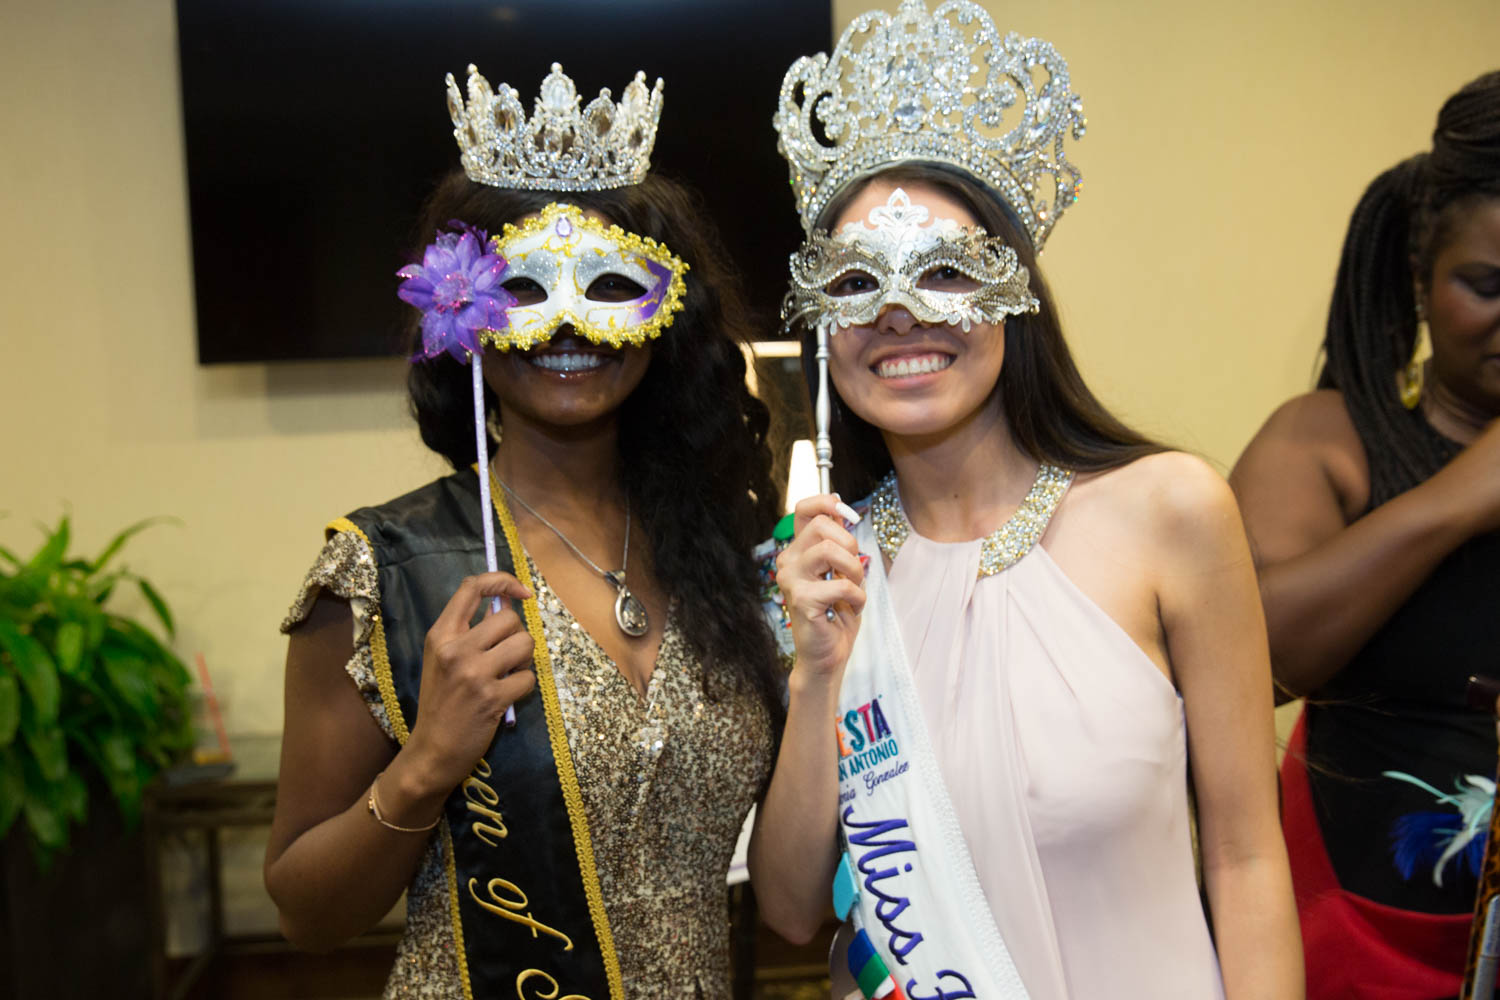 Masks could not hide the Fiesta mood at the annual Masquerade Party